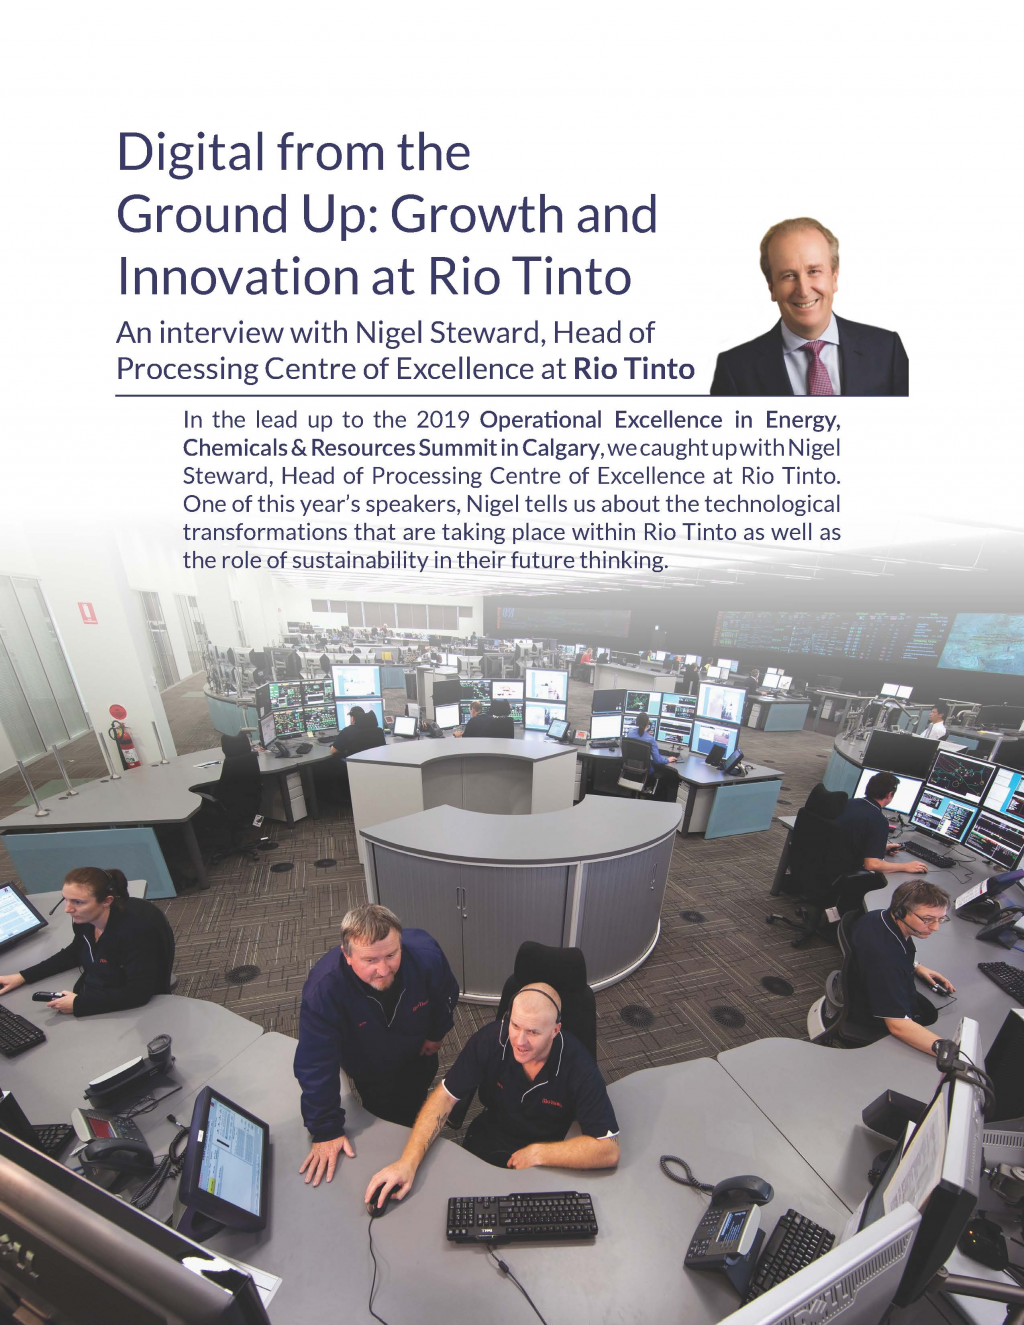 Digital from the Ground Up: Growth and Innovation at Rio Tinto